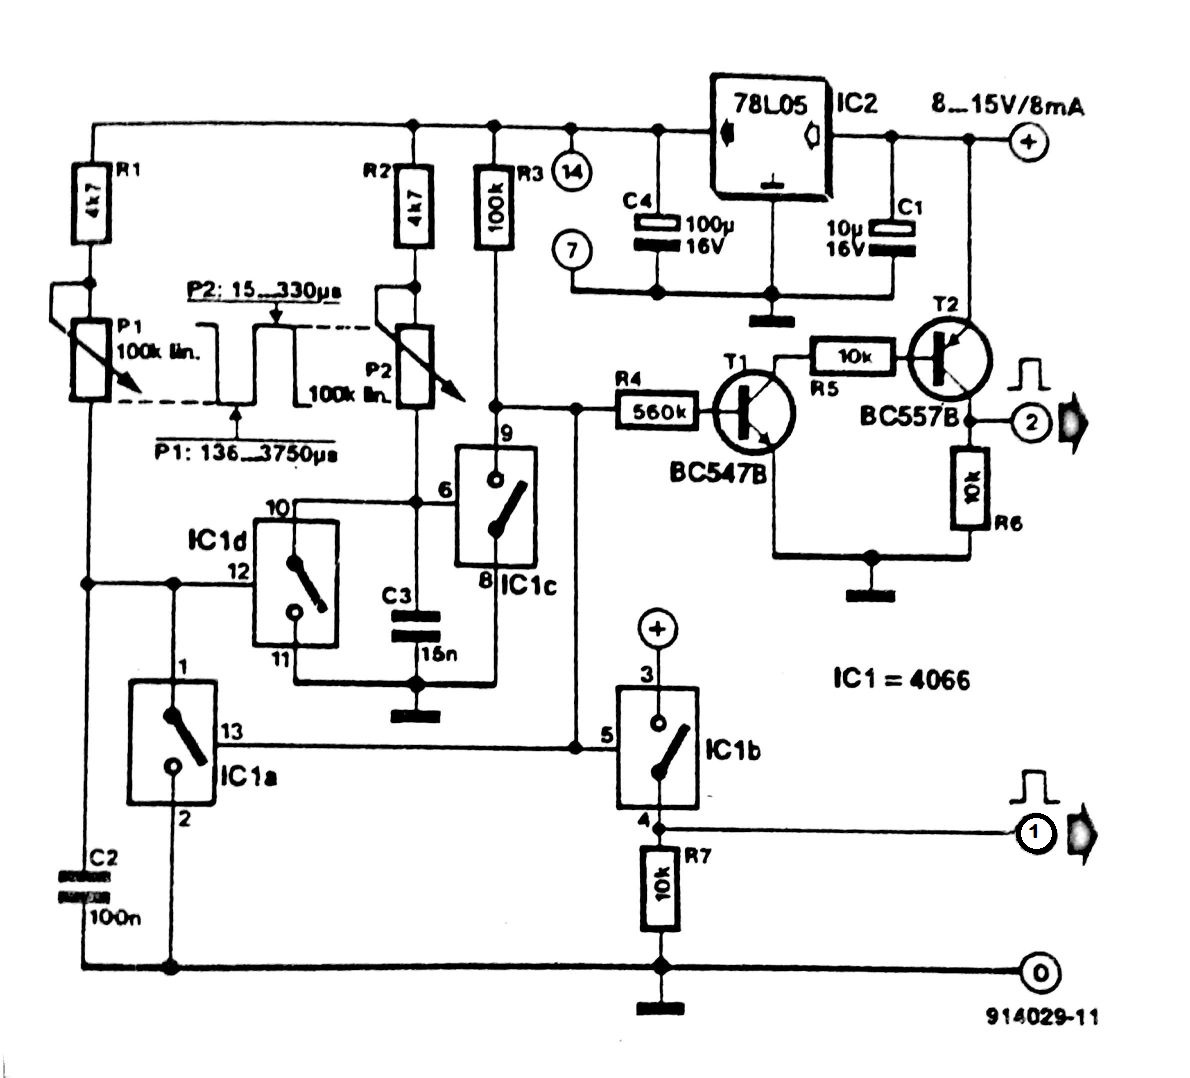 Luxury Rts Transfer Switch Wiring Diagram Ensign - Electrical ...